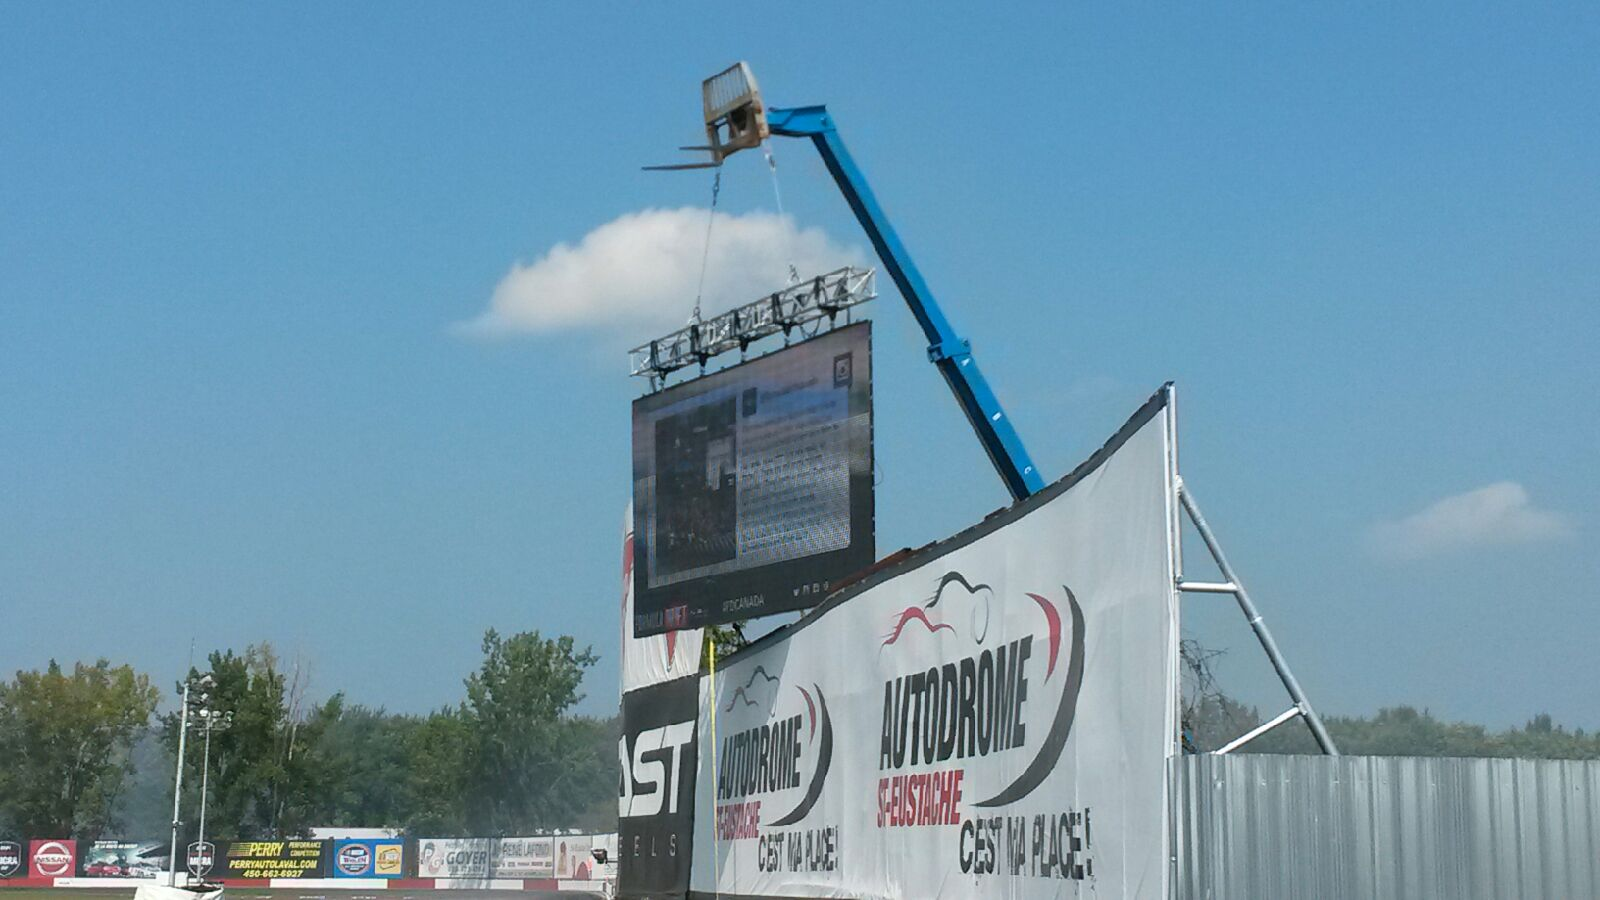 Video wall at Autodrome ST -Eustache